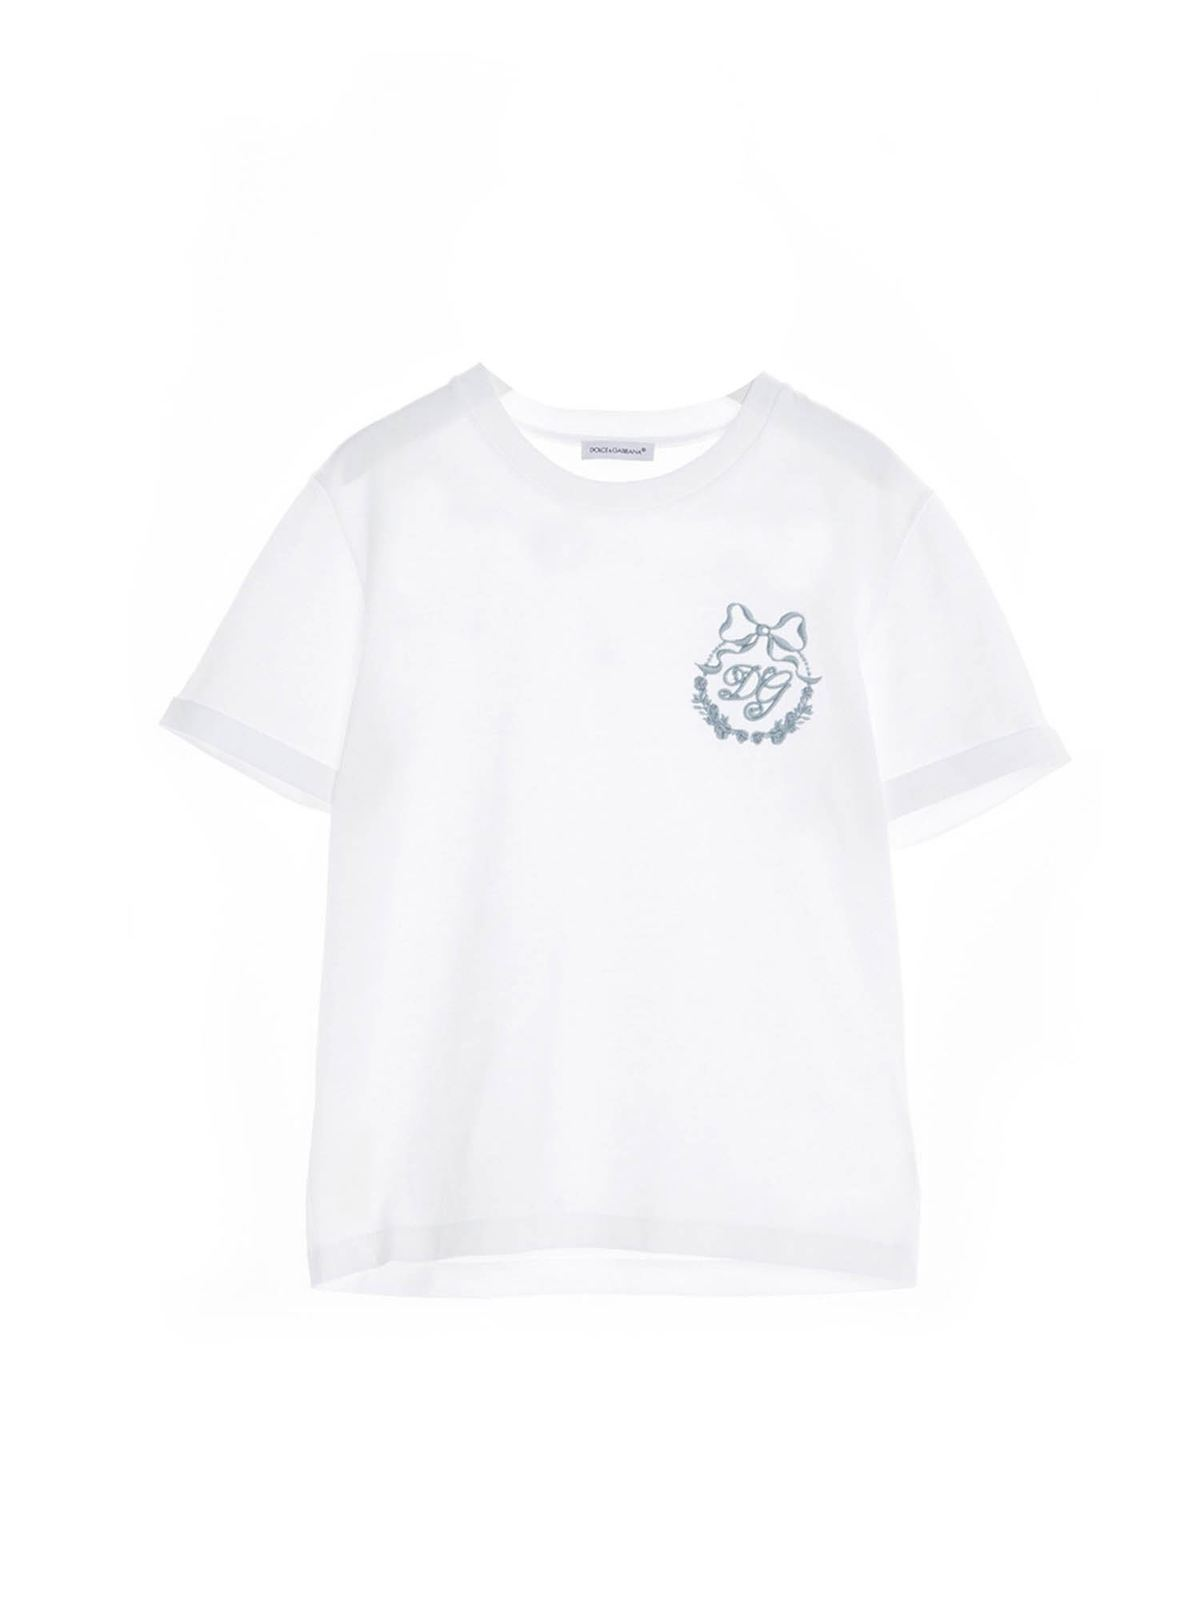 Dolce & Gabbana Jr Cottons DG EMBROIDERED T-SHIRT IN WHITE